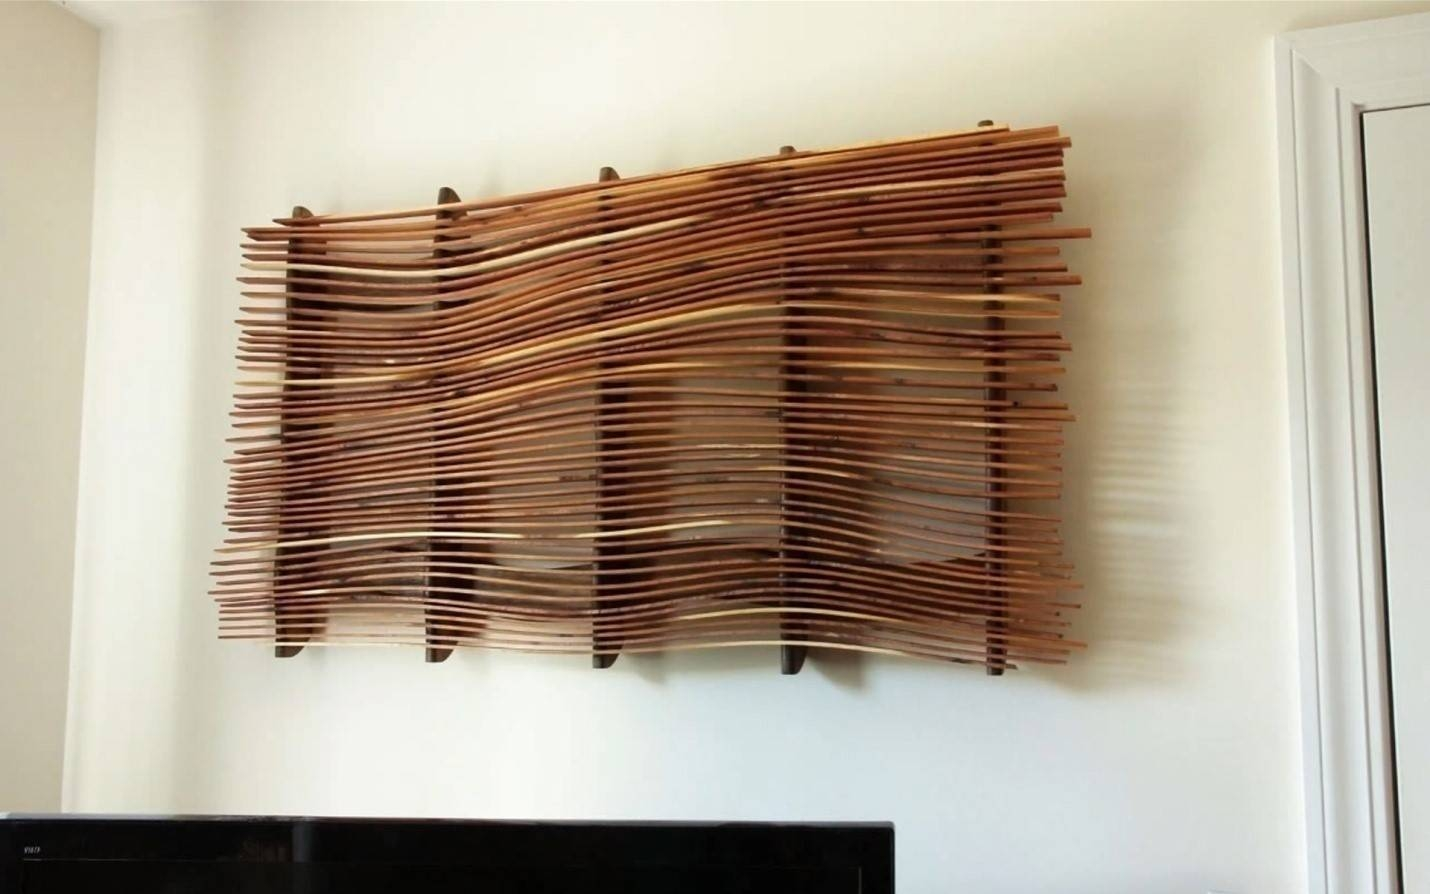 How To Make Wall Art From Scrap Wood | Diy Project | Cut The Wood Throughout Most Recently Released Scrap Metal Wall Art (Gallery 8 of 20)